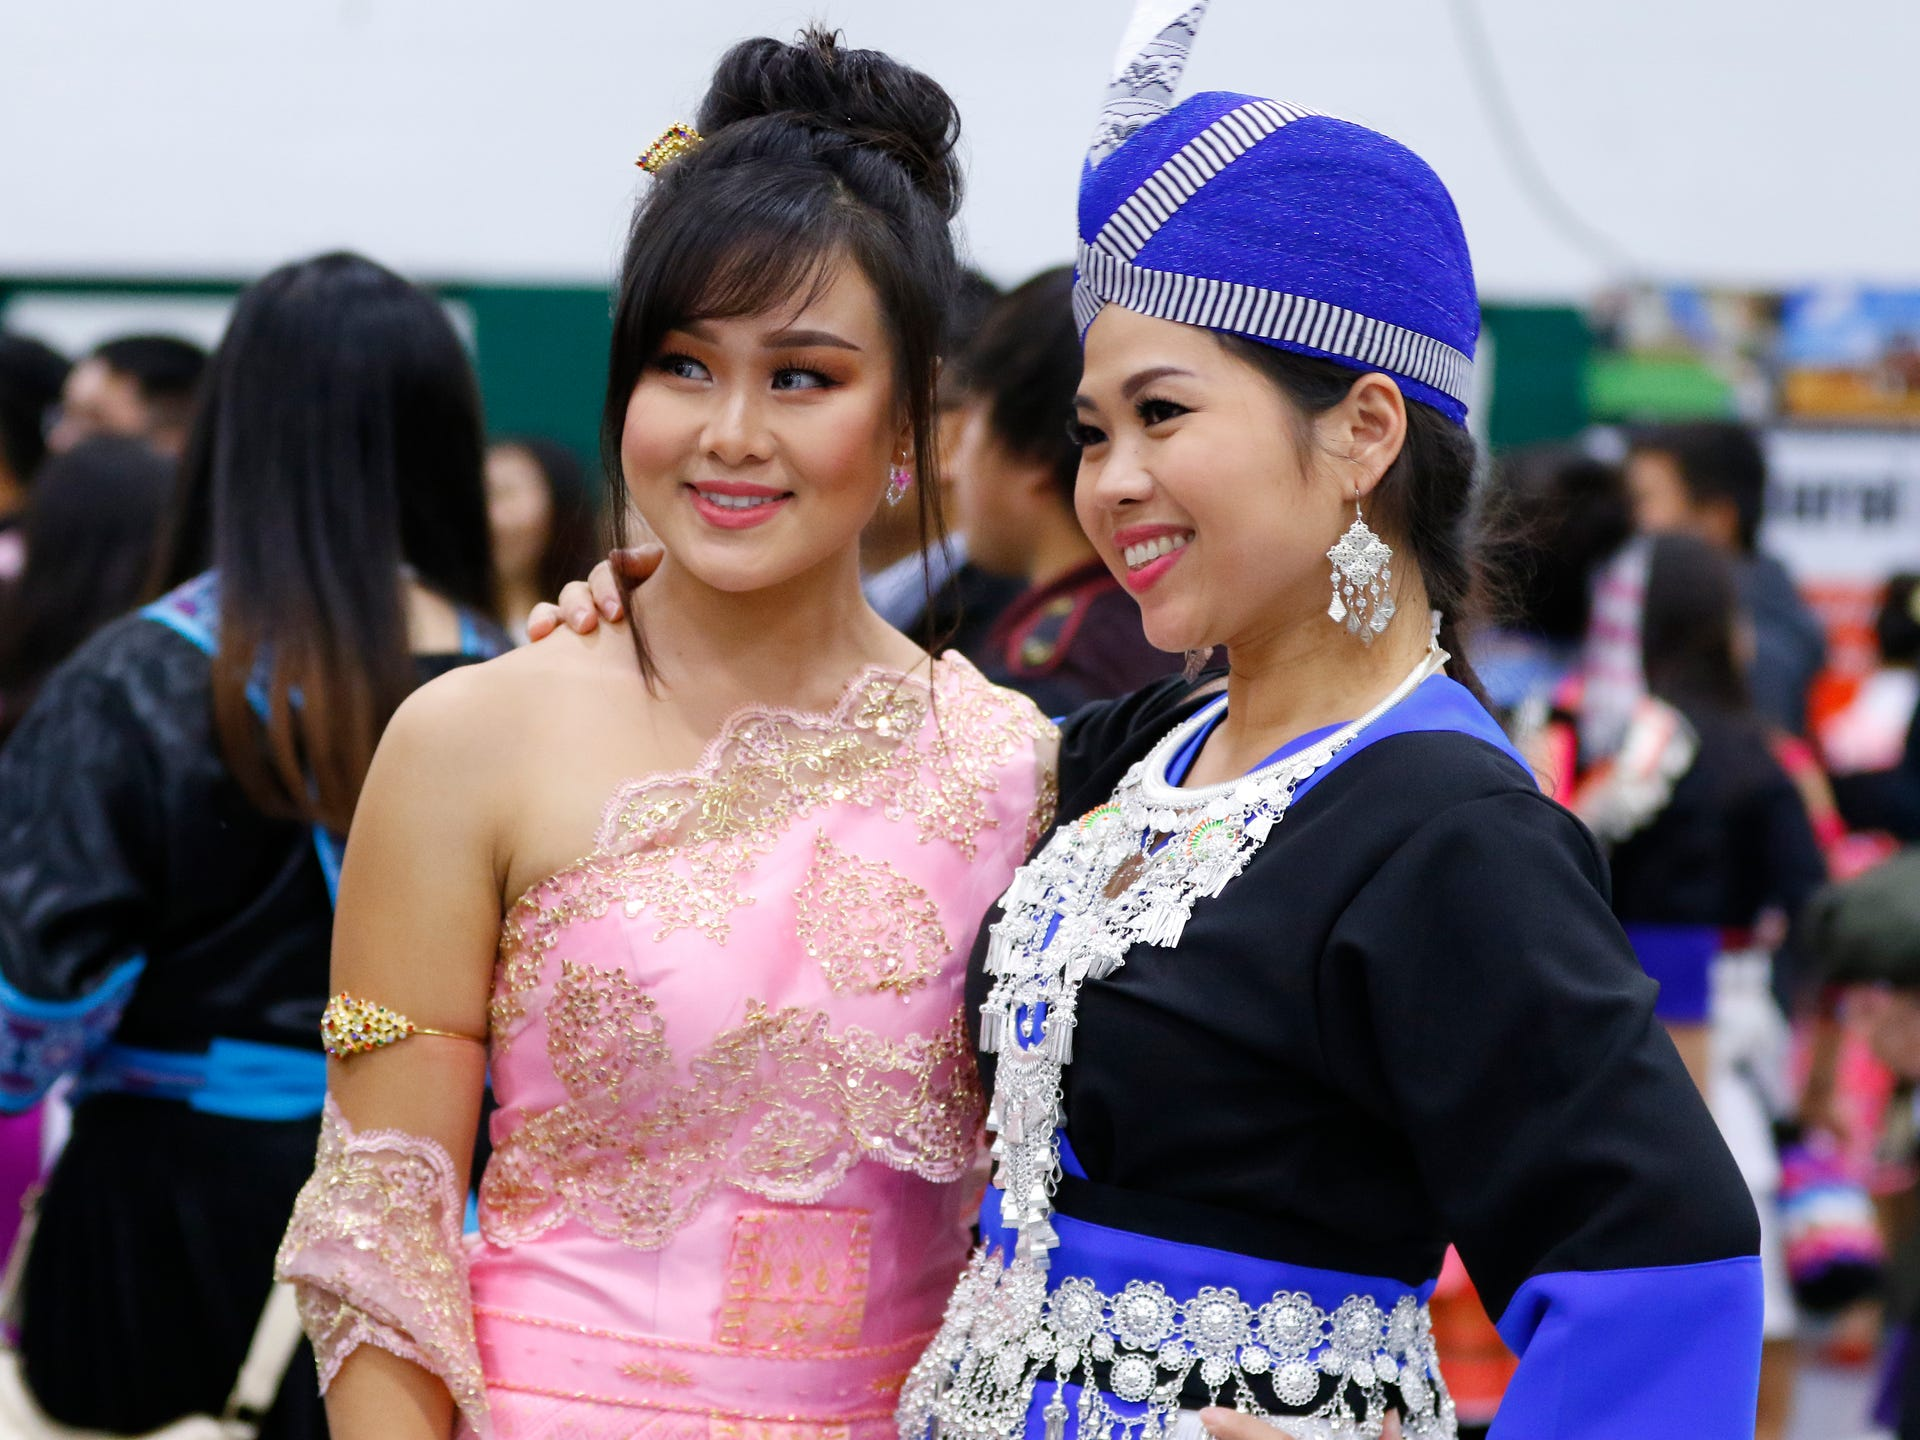 Central Wisconsin Hmong celebrates its New Year